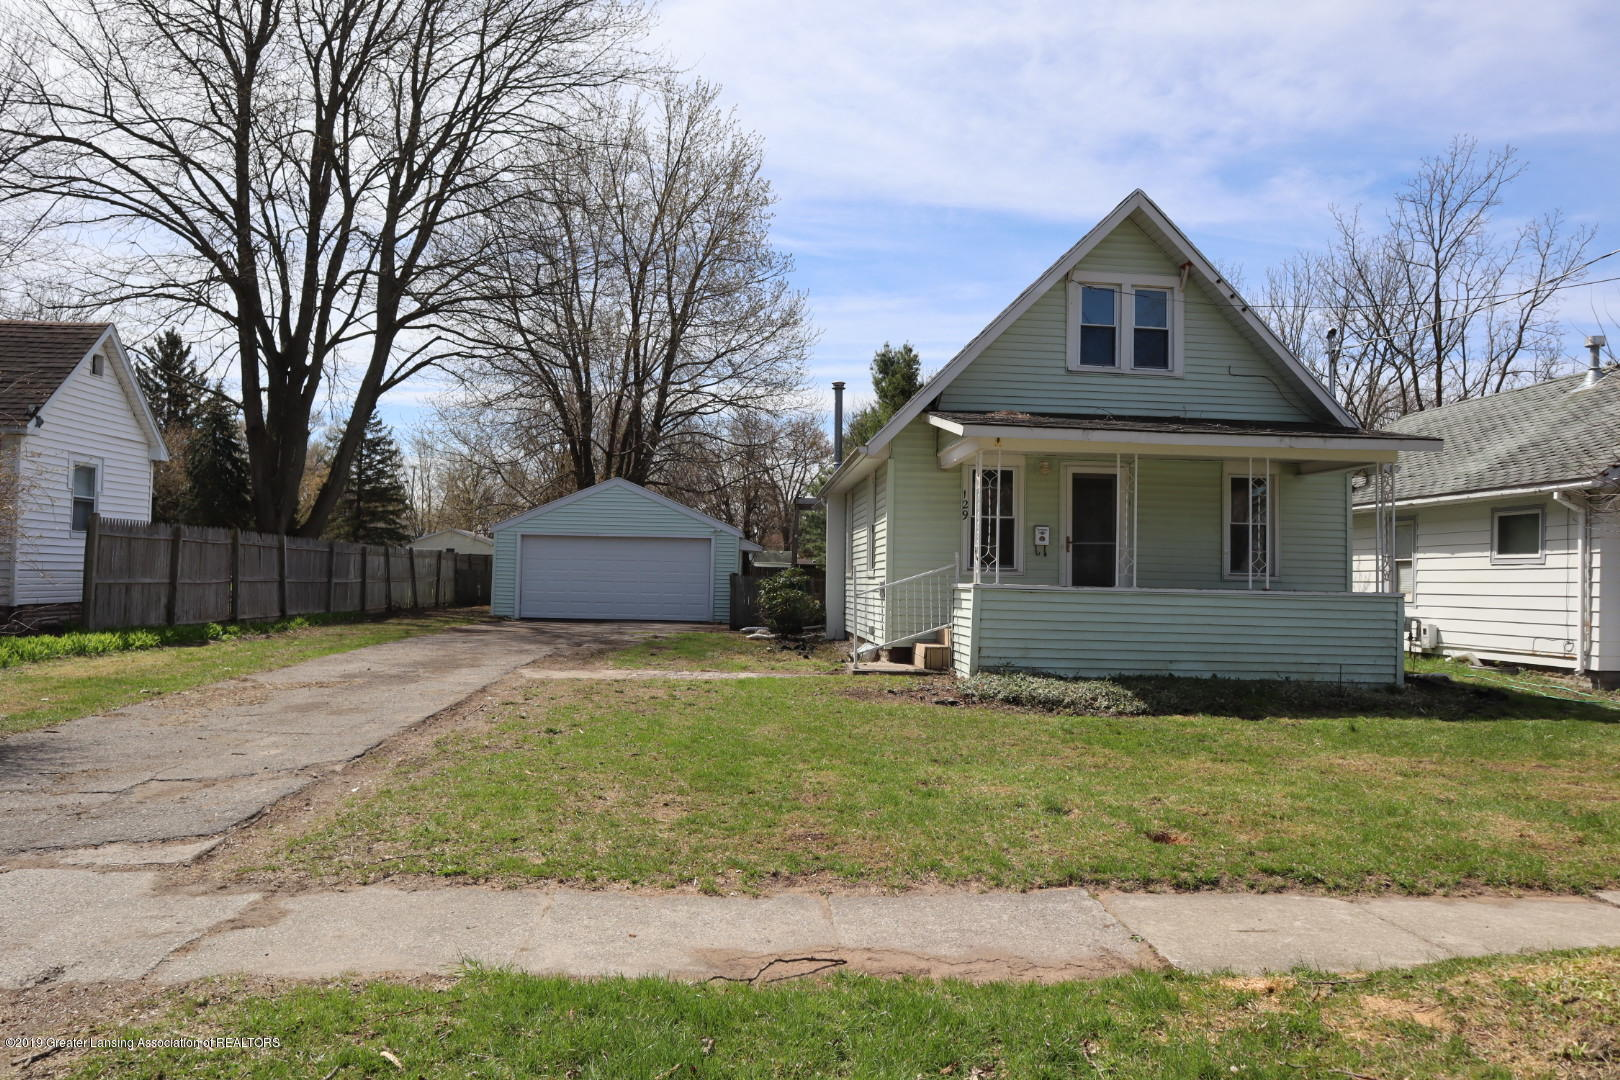 129 W Hodge Ave - Front - 1